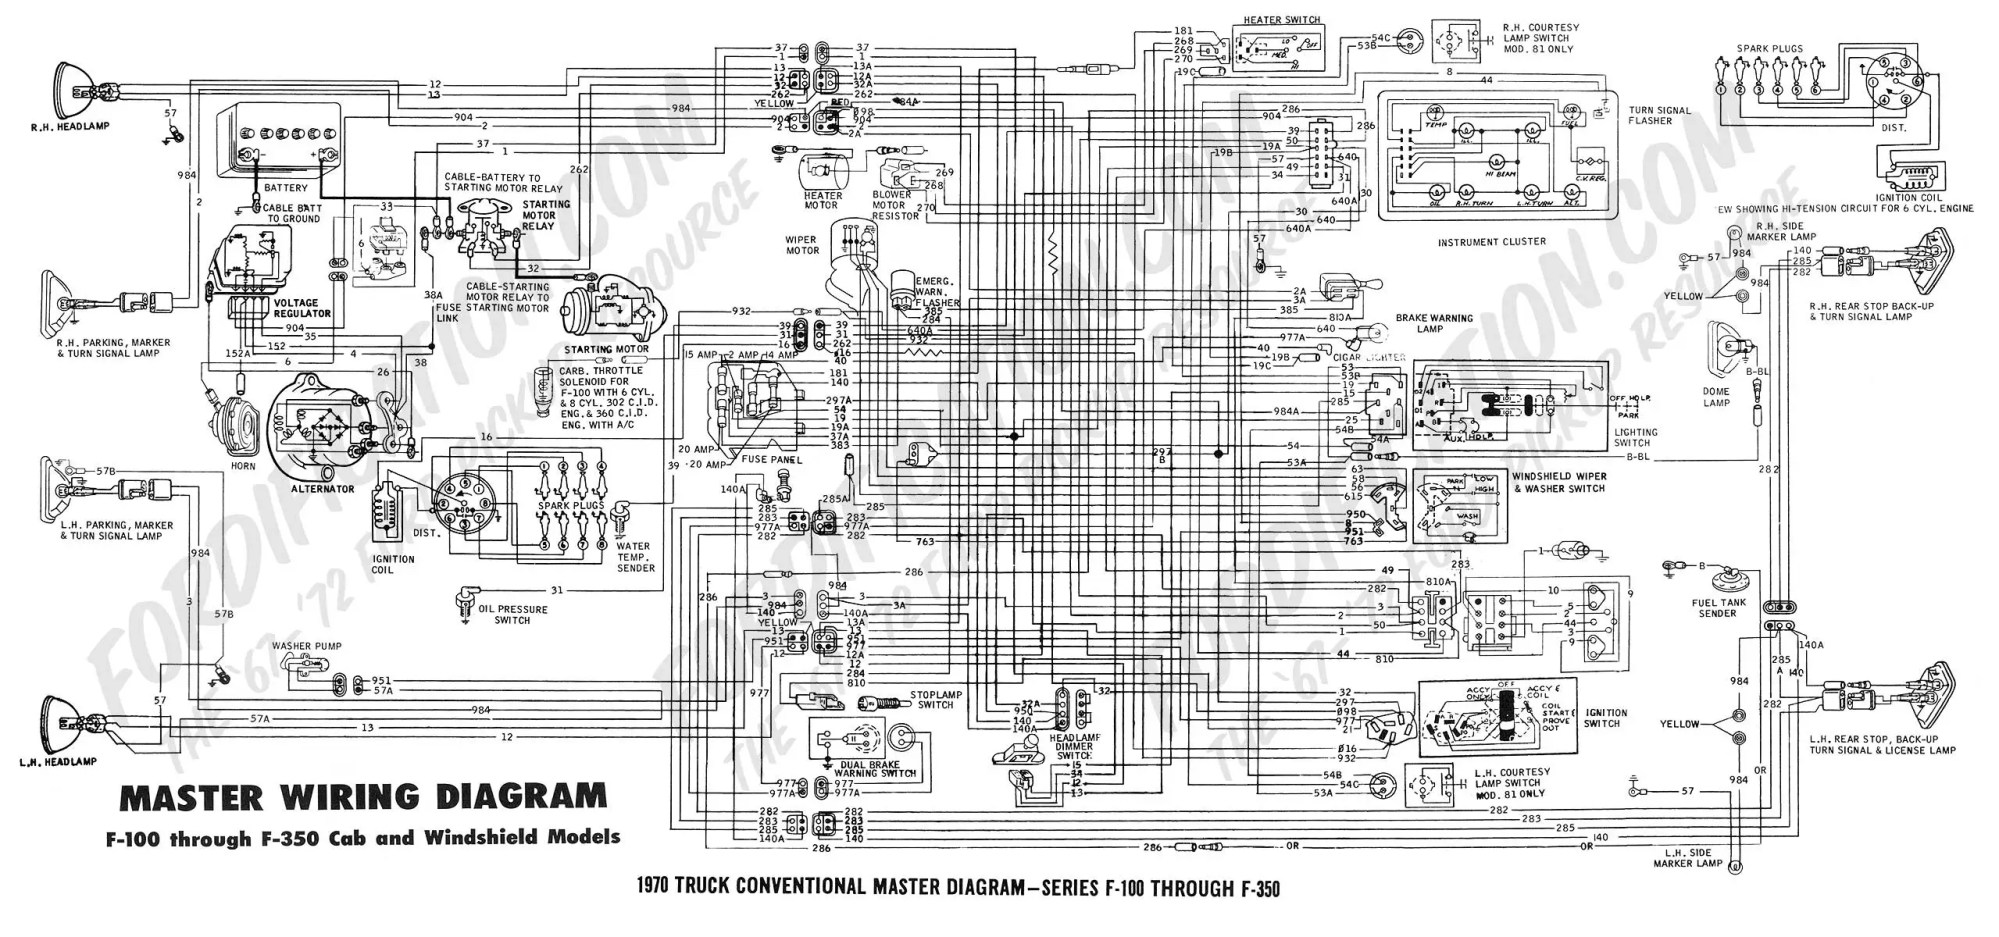 hight resolution of for f350 injector wiring harness free download wiring library 1988 f350 specs 1979 ford wiring harness